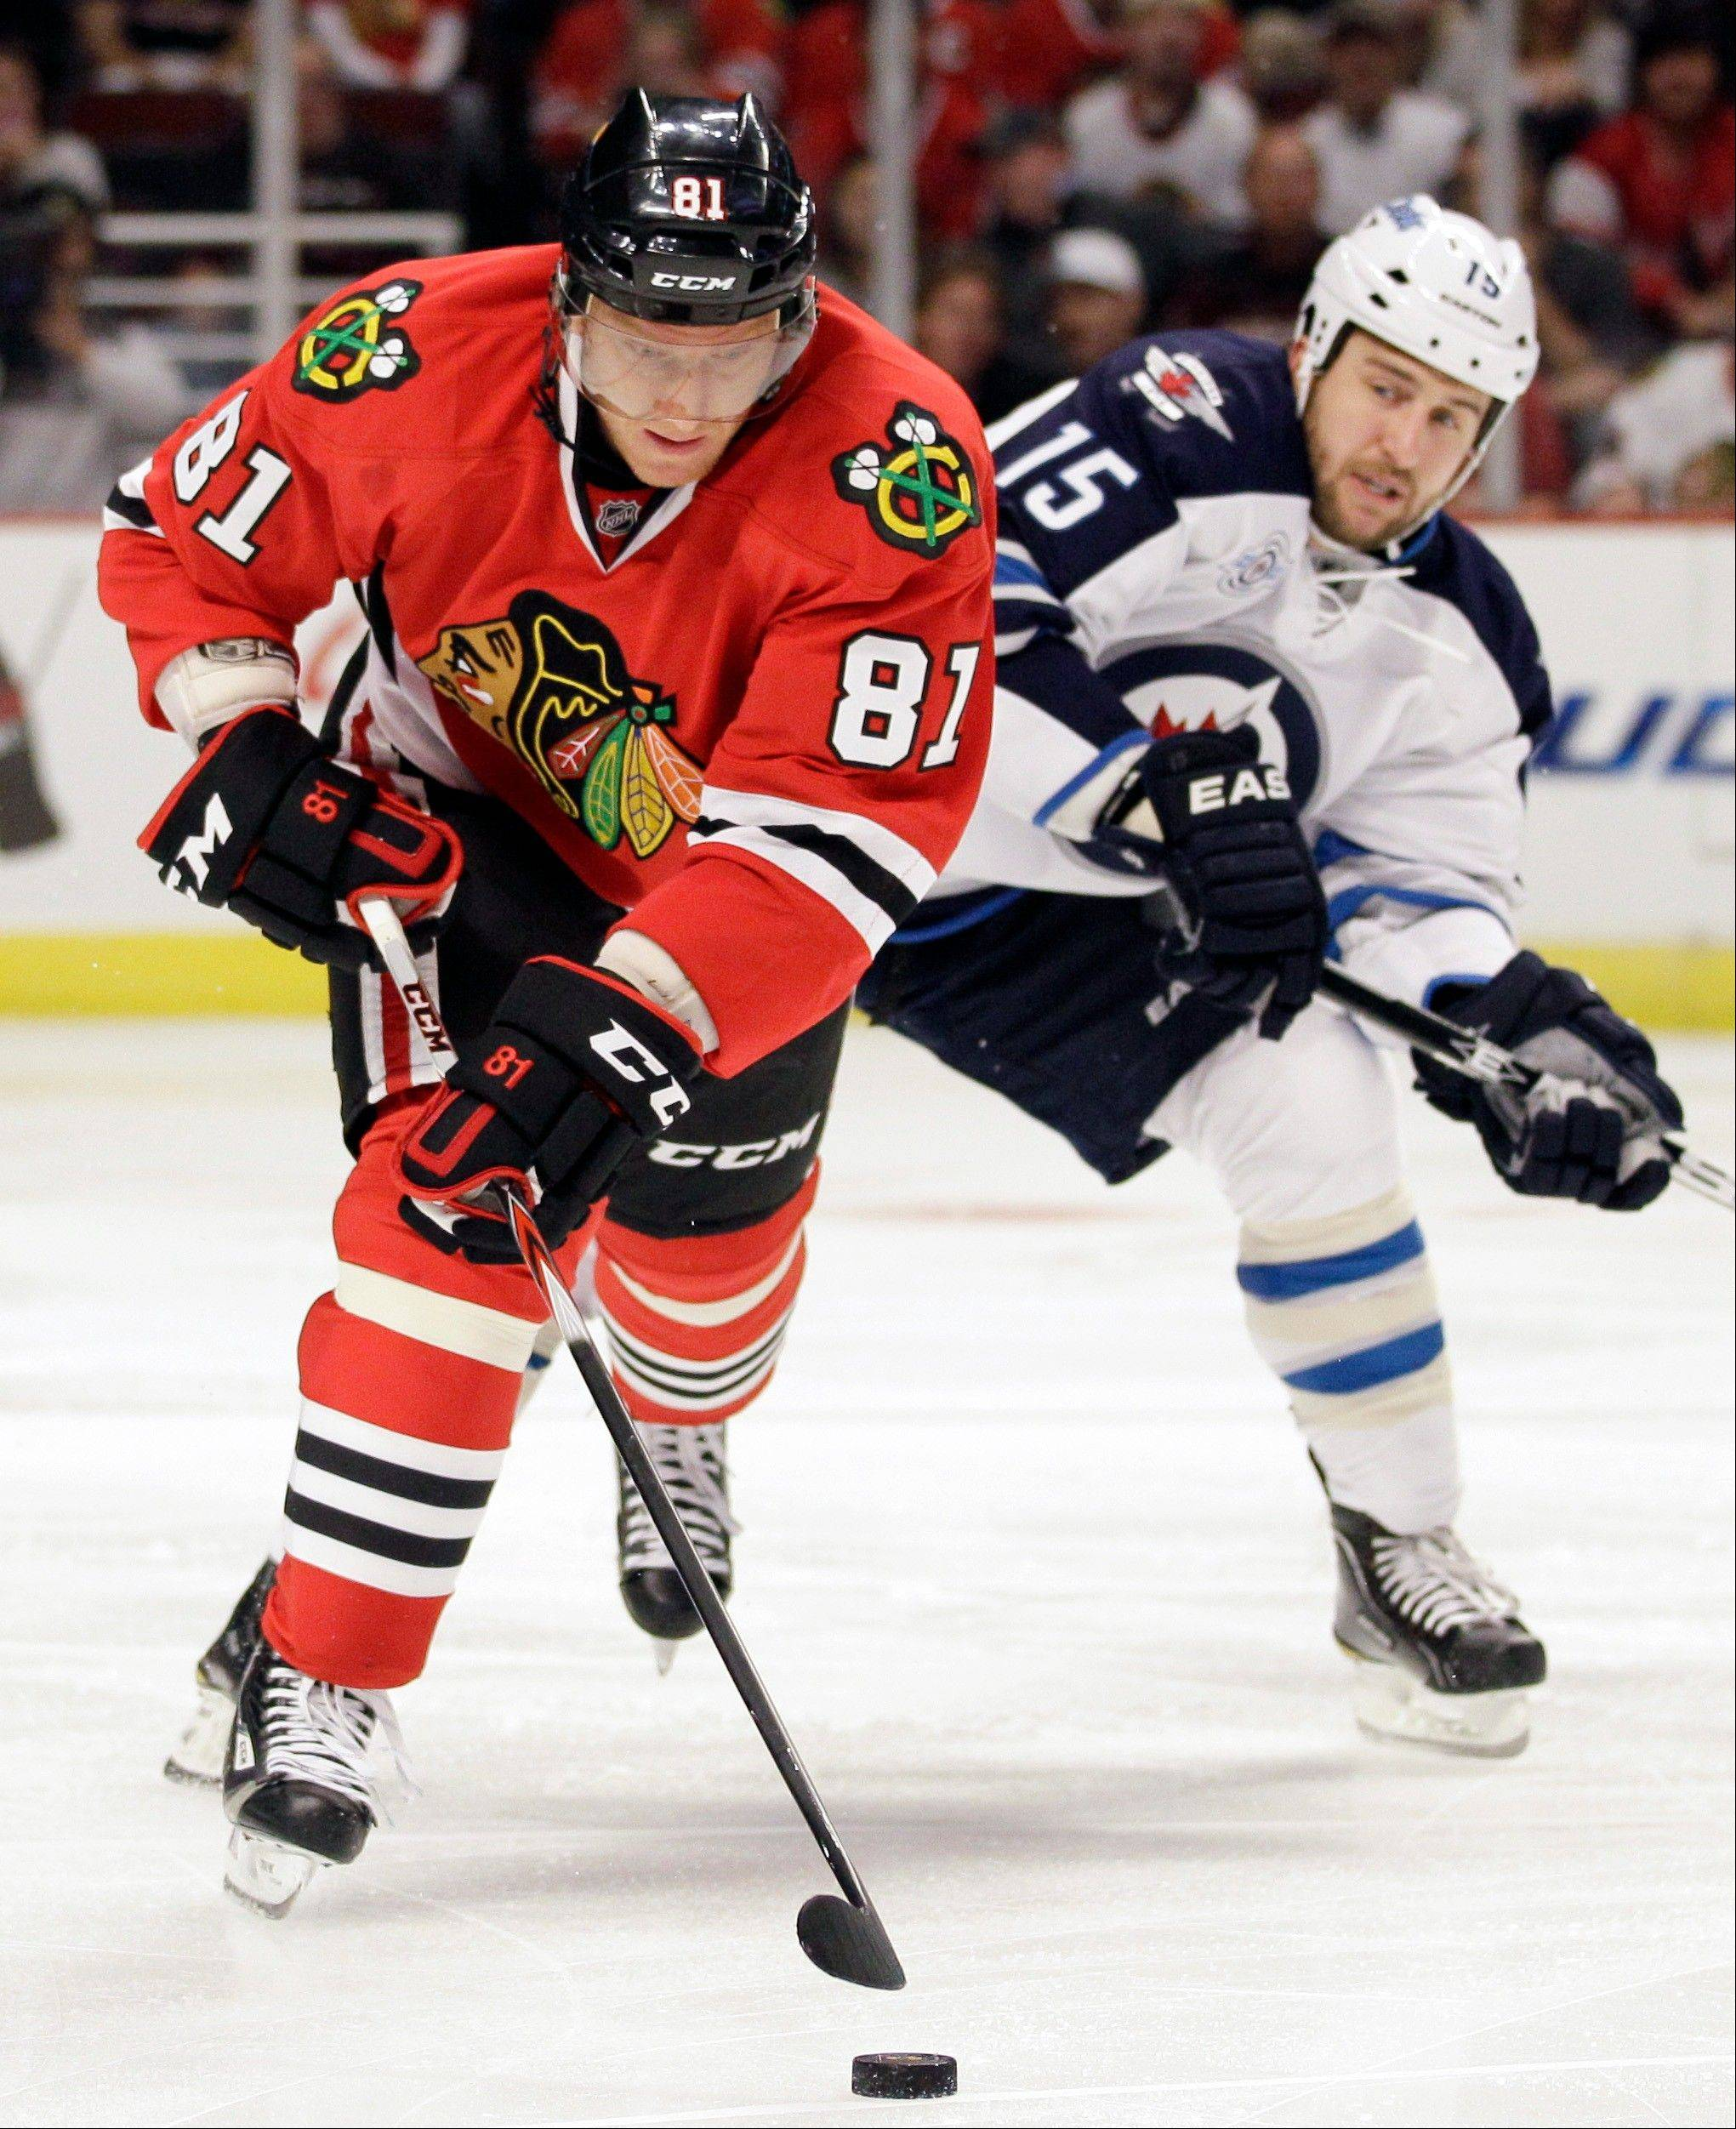 Blackhawks' Hossa in midst of major slump